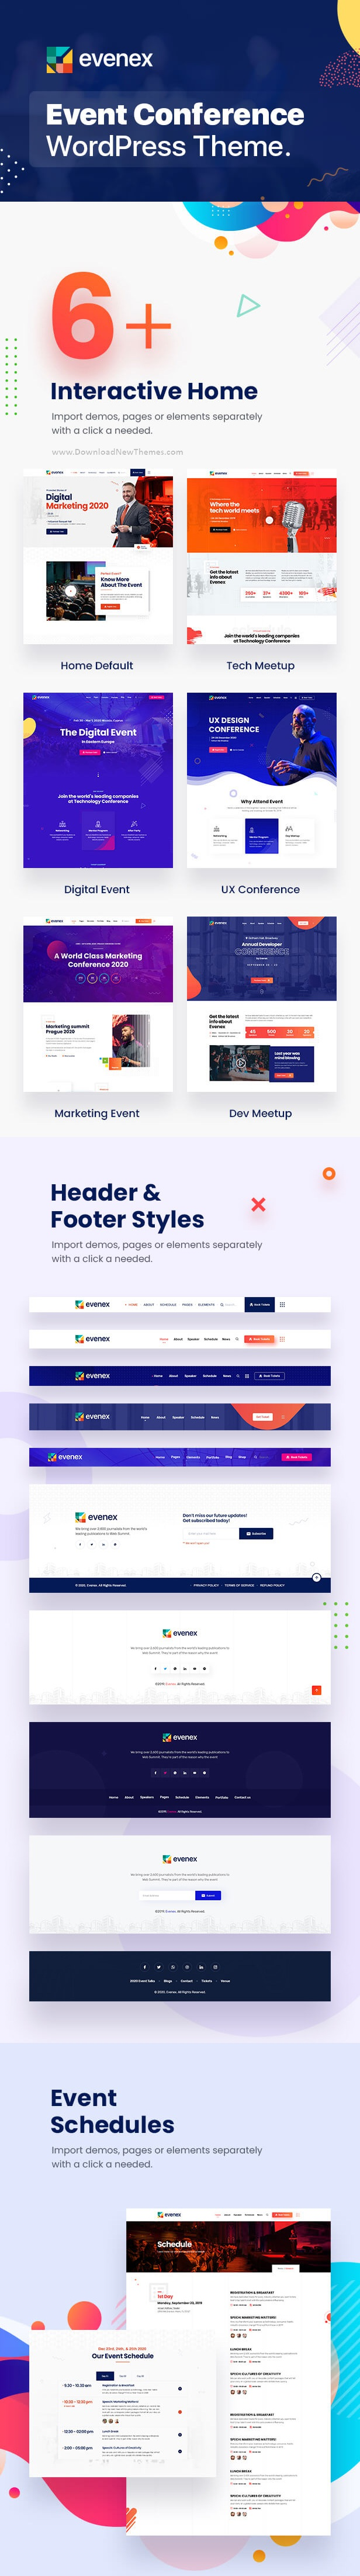 Event Conference Website Theme